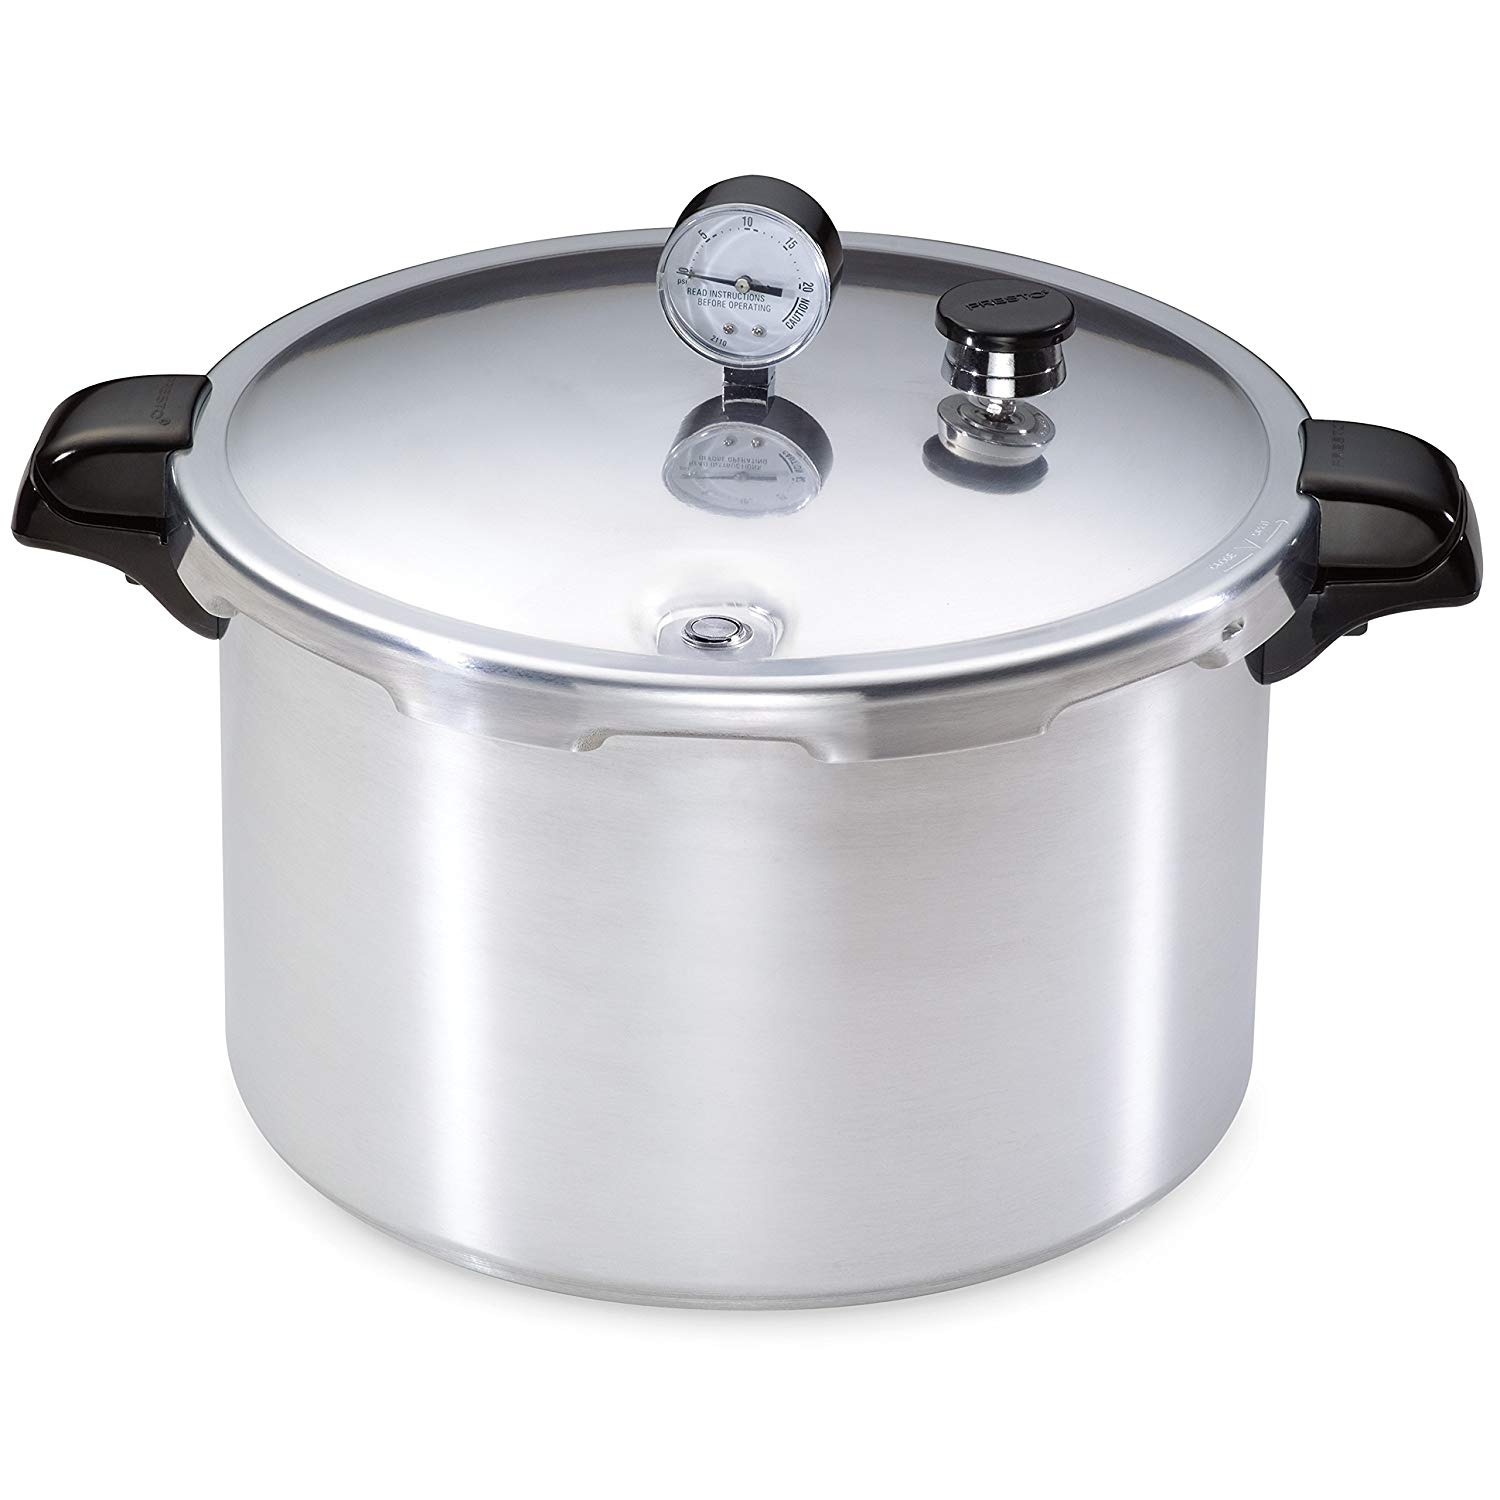 Presto 1755 16 Quart Aluminum Pressure Canner Review